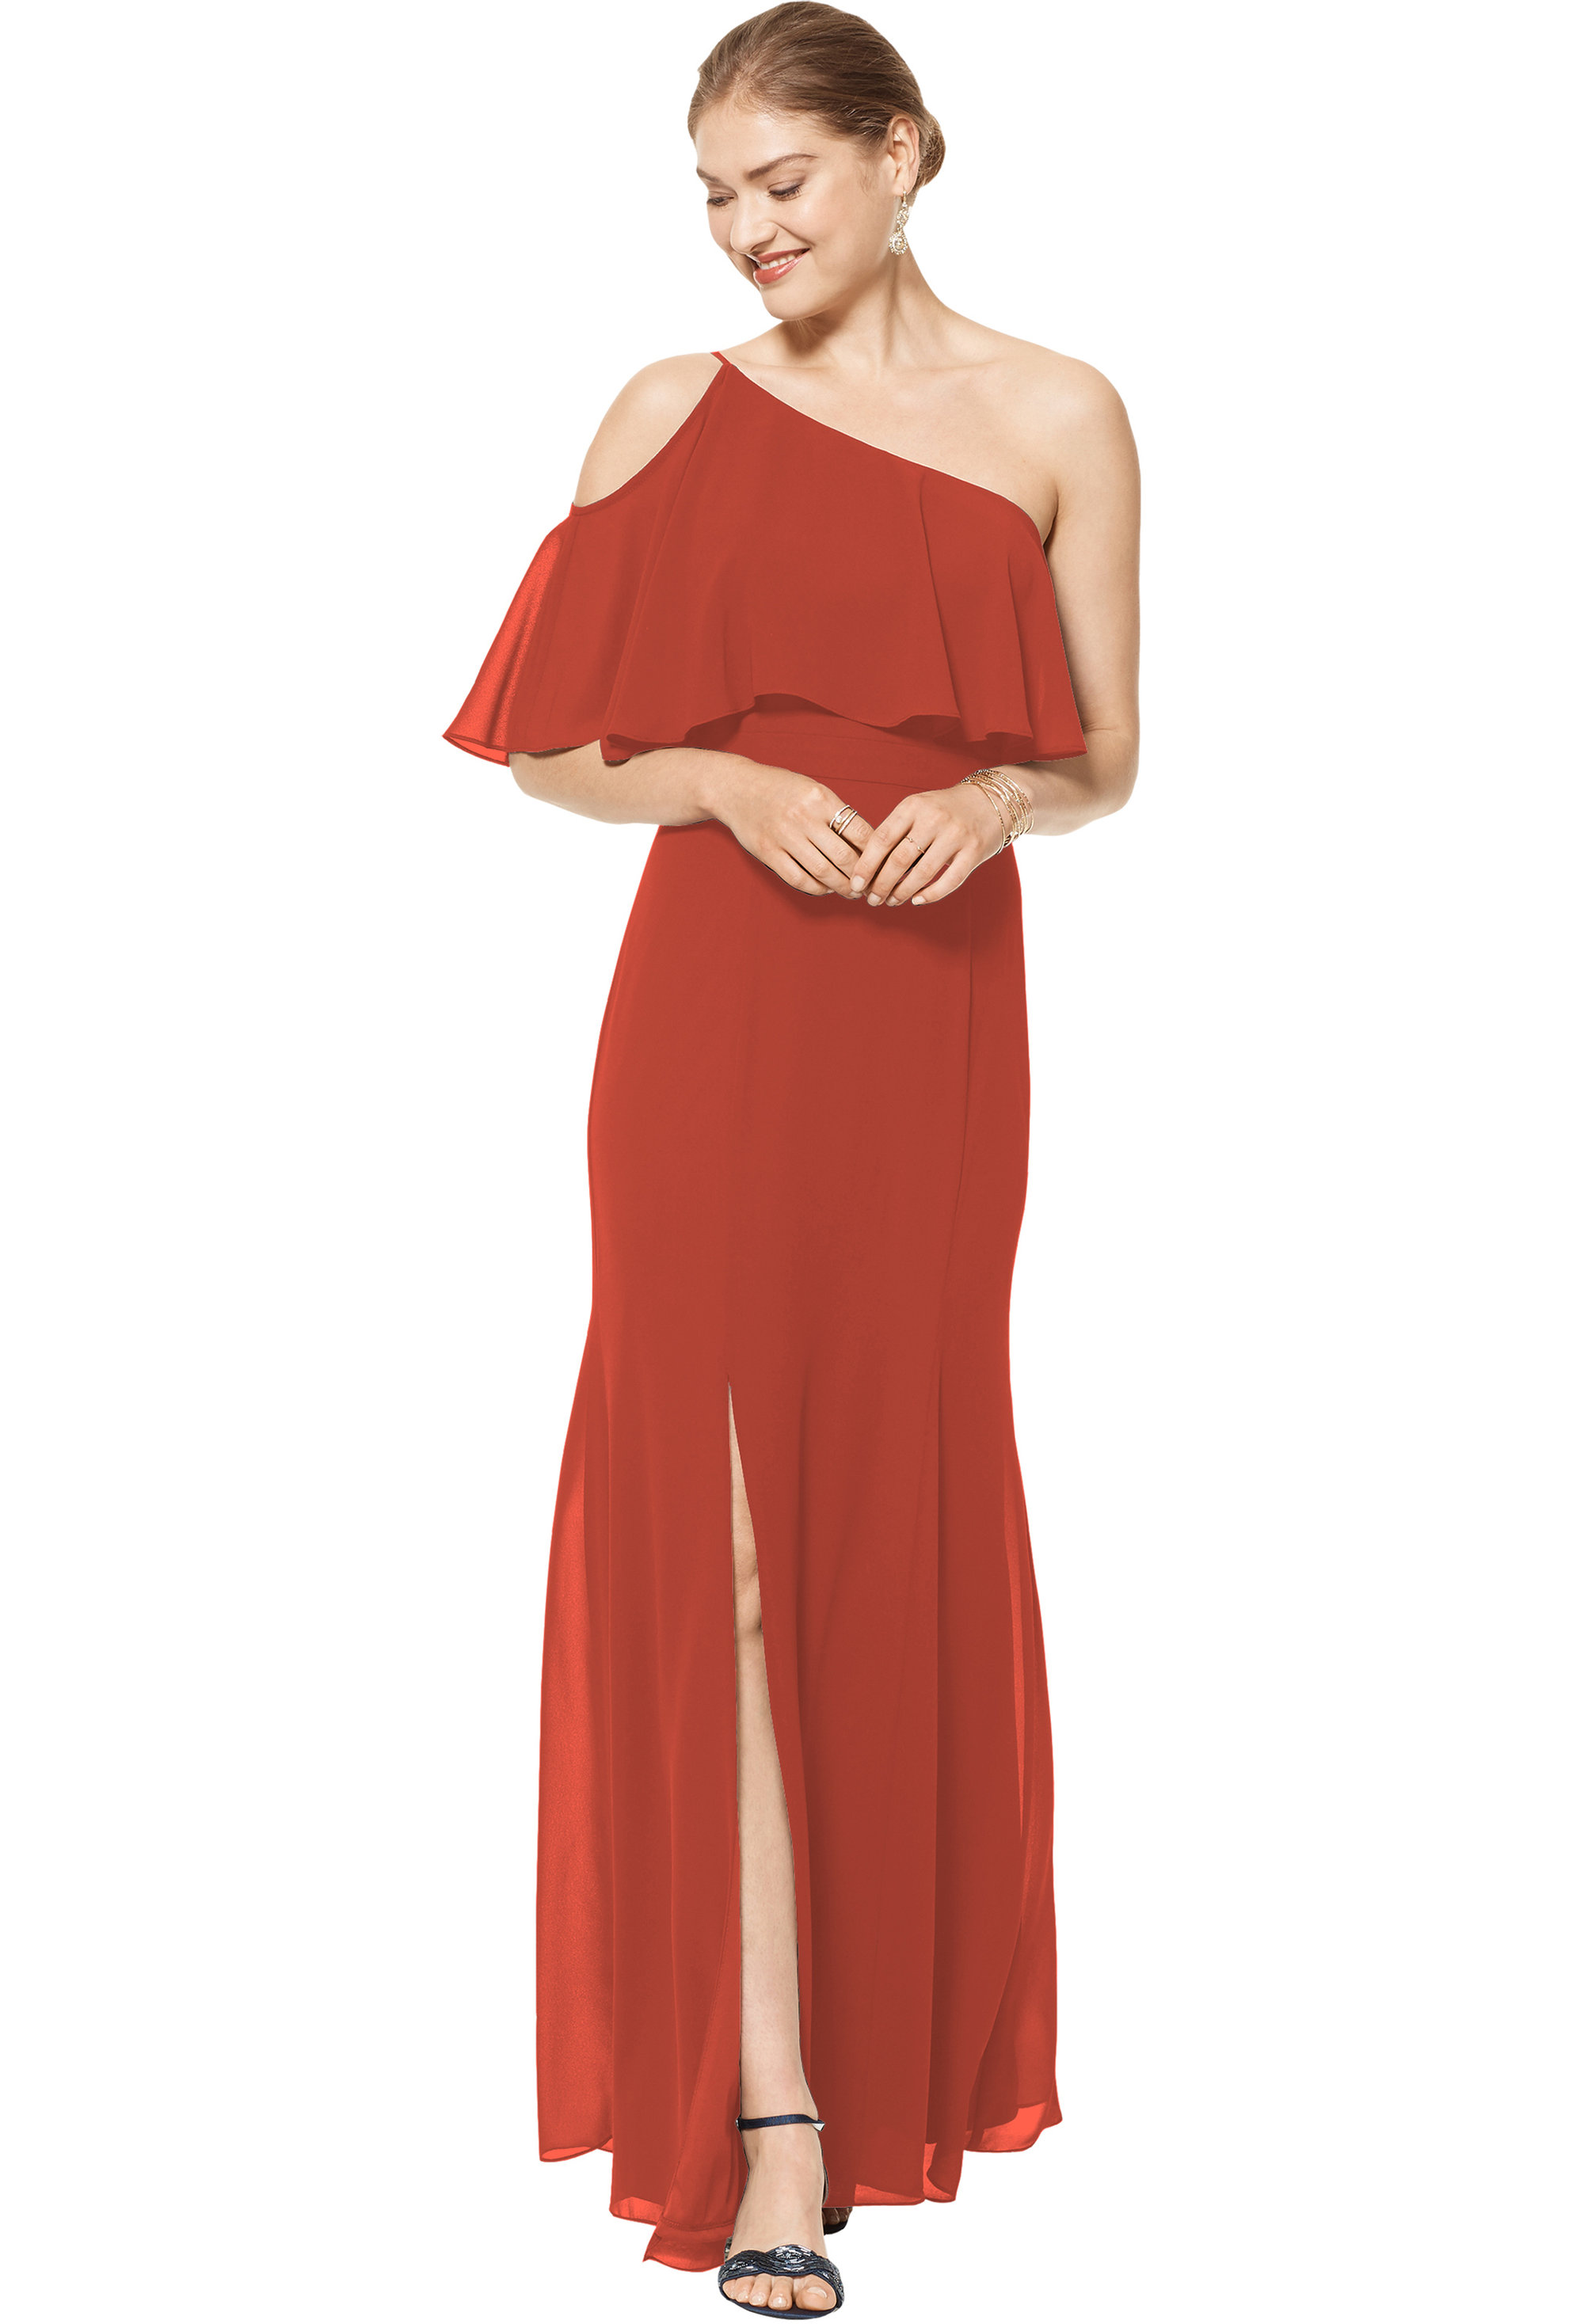 Bill Levkoff RUST Chiffon One Shoulder Floor Length gown, $158.00 Front